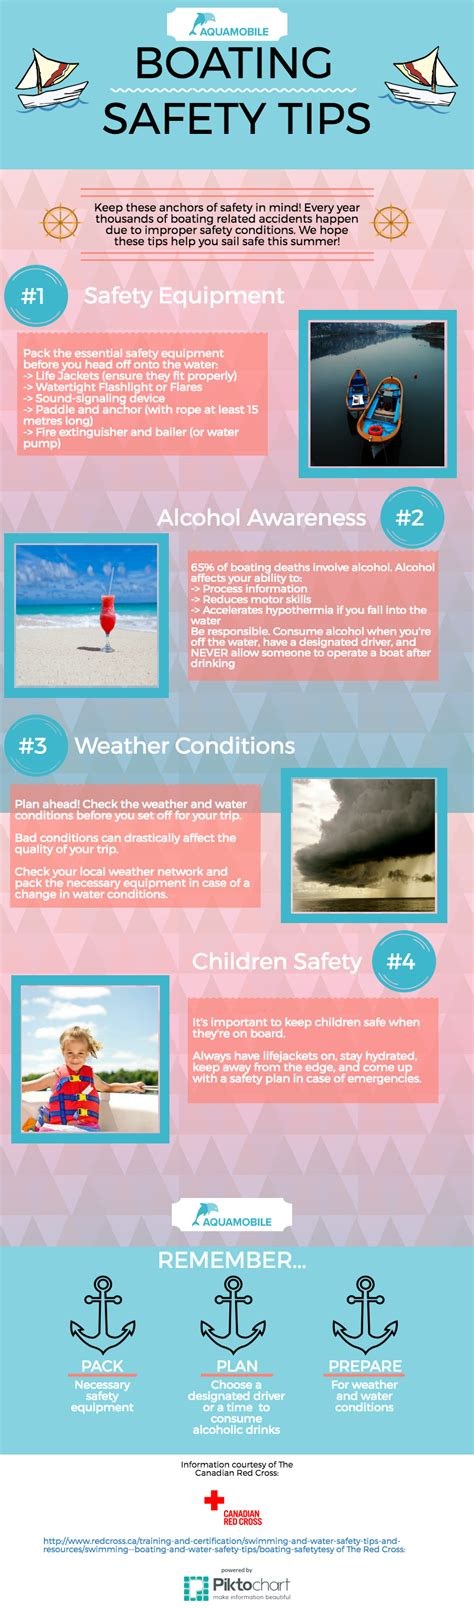 Sail Safe This Summer Boat Safety Tips Infographic